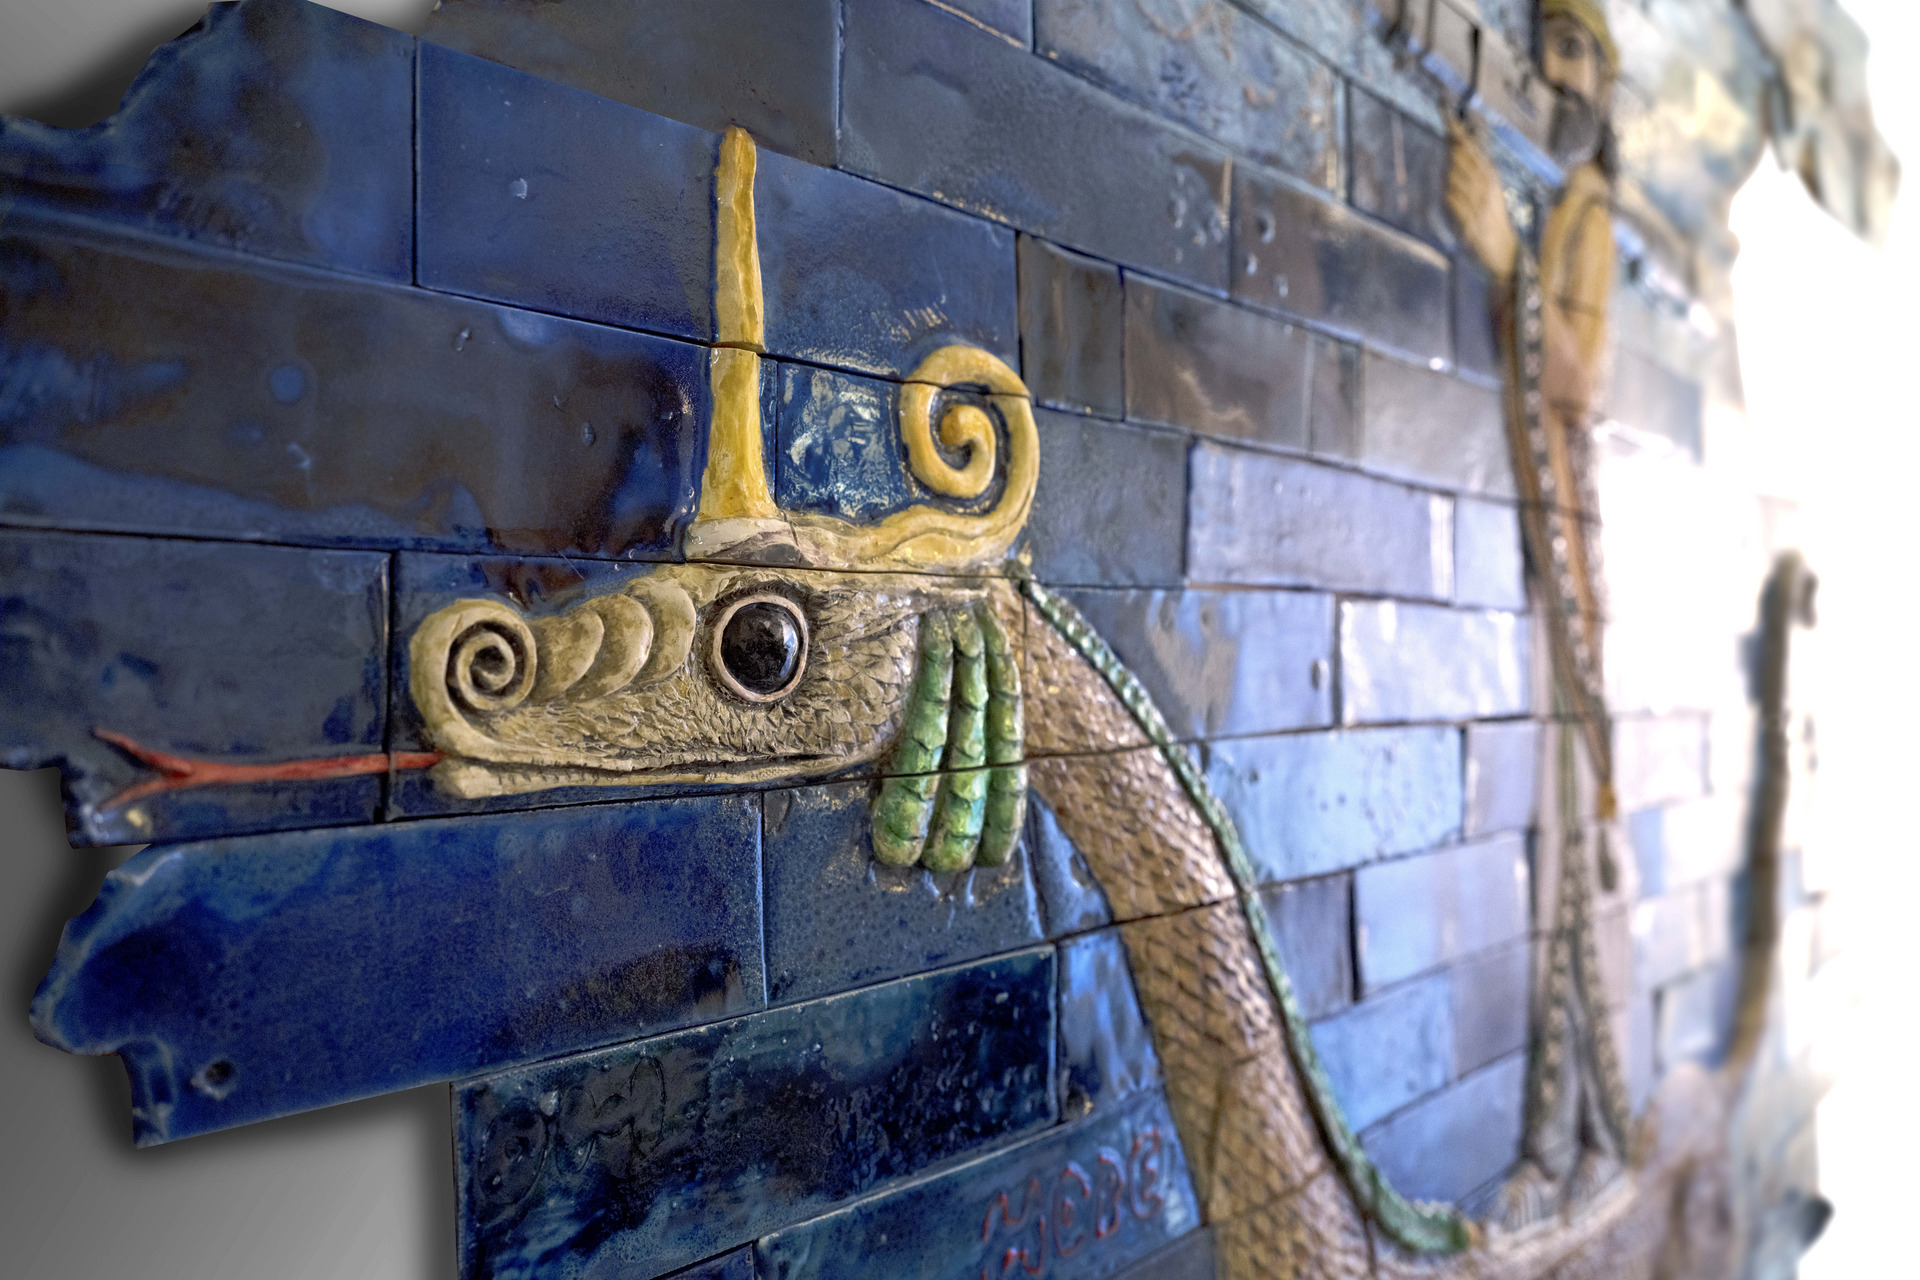 Relief and sculpture of The Beast on the background of a brick wall